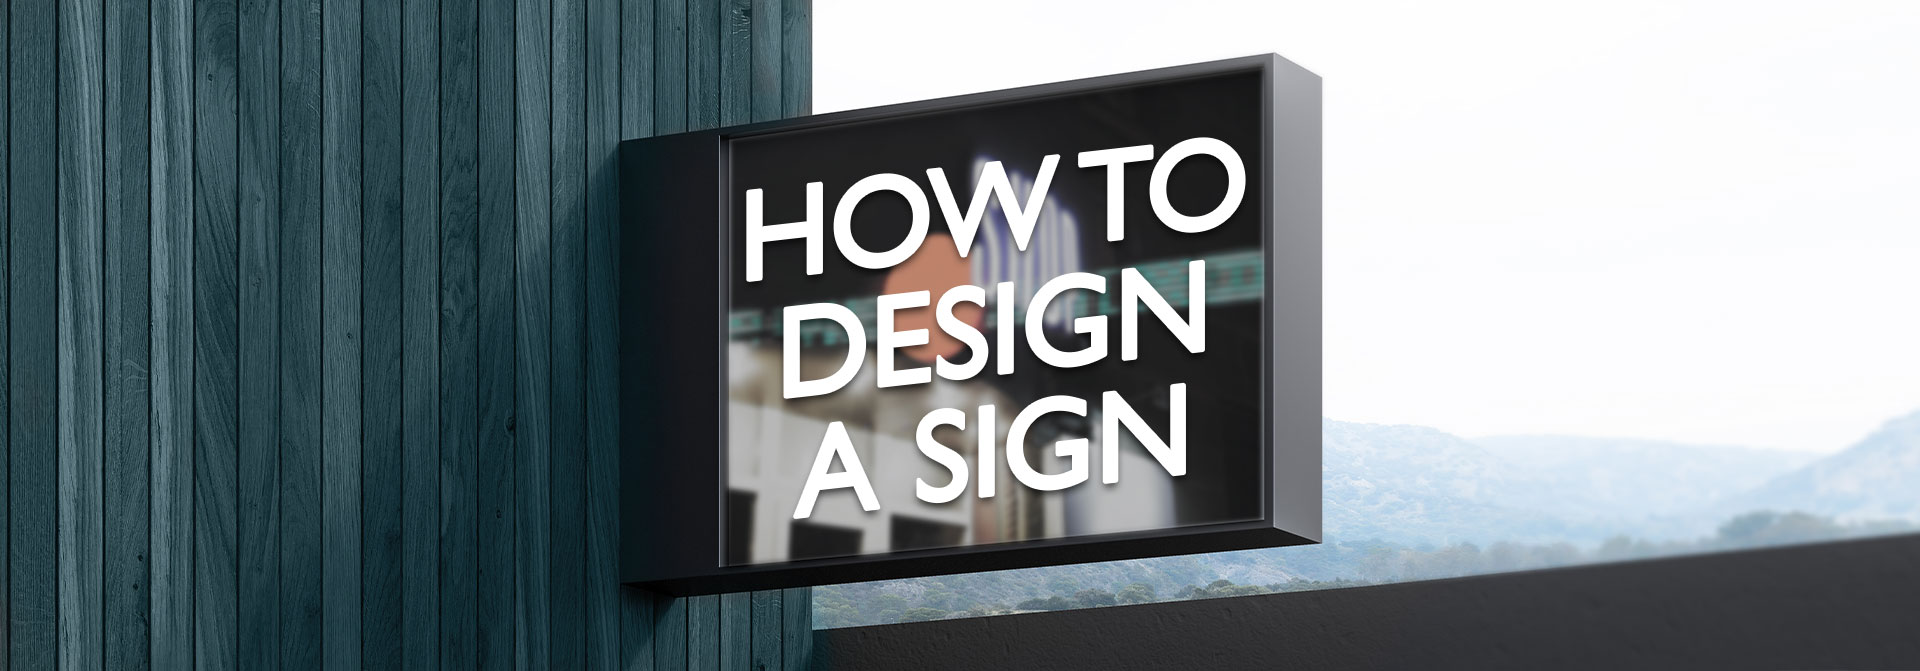 How to Design a Sign